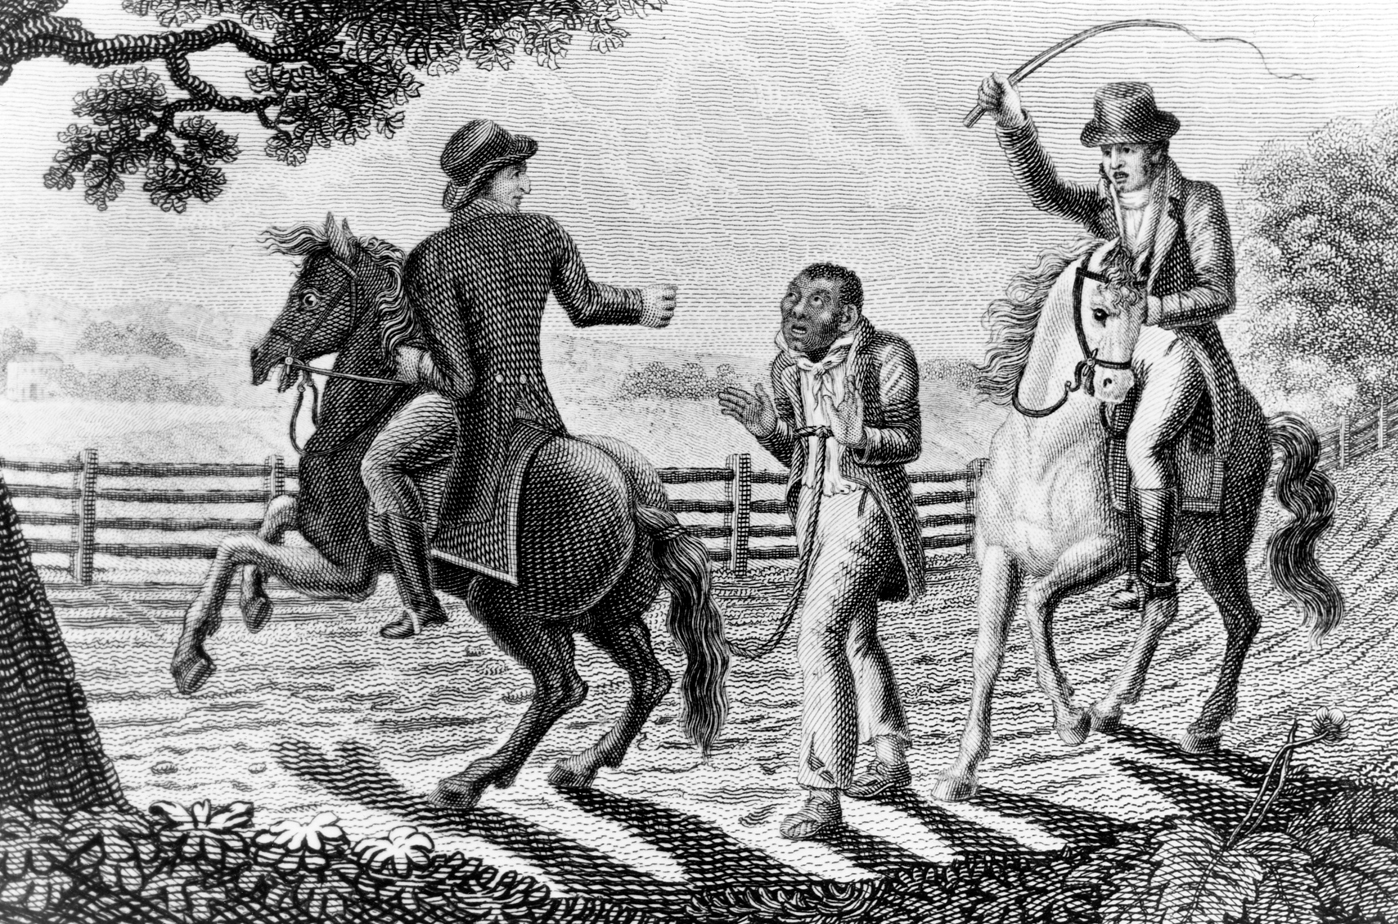 Drawing of a slave patrol